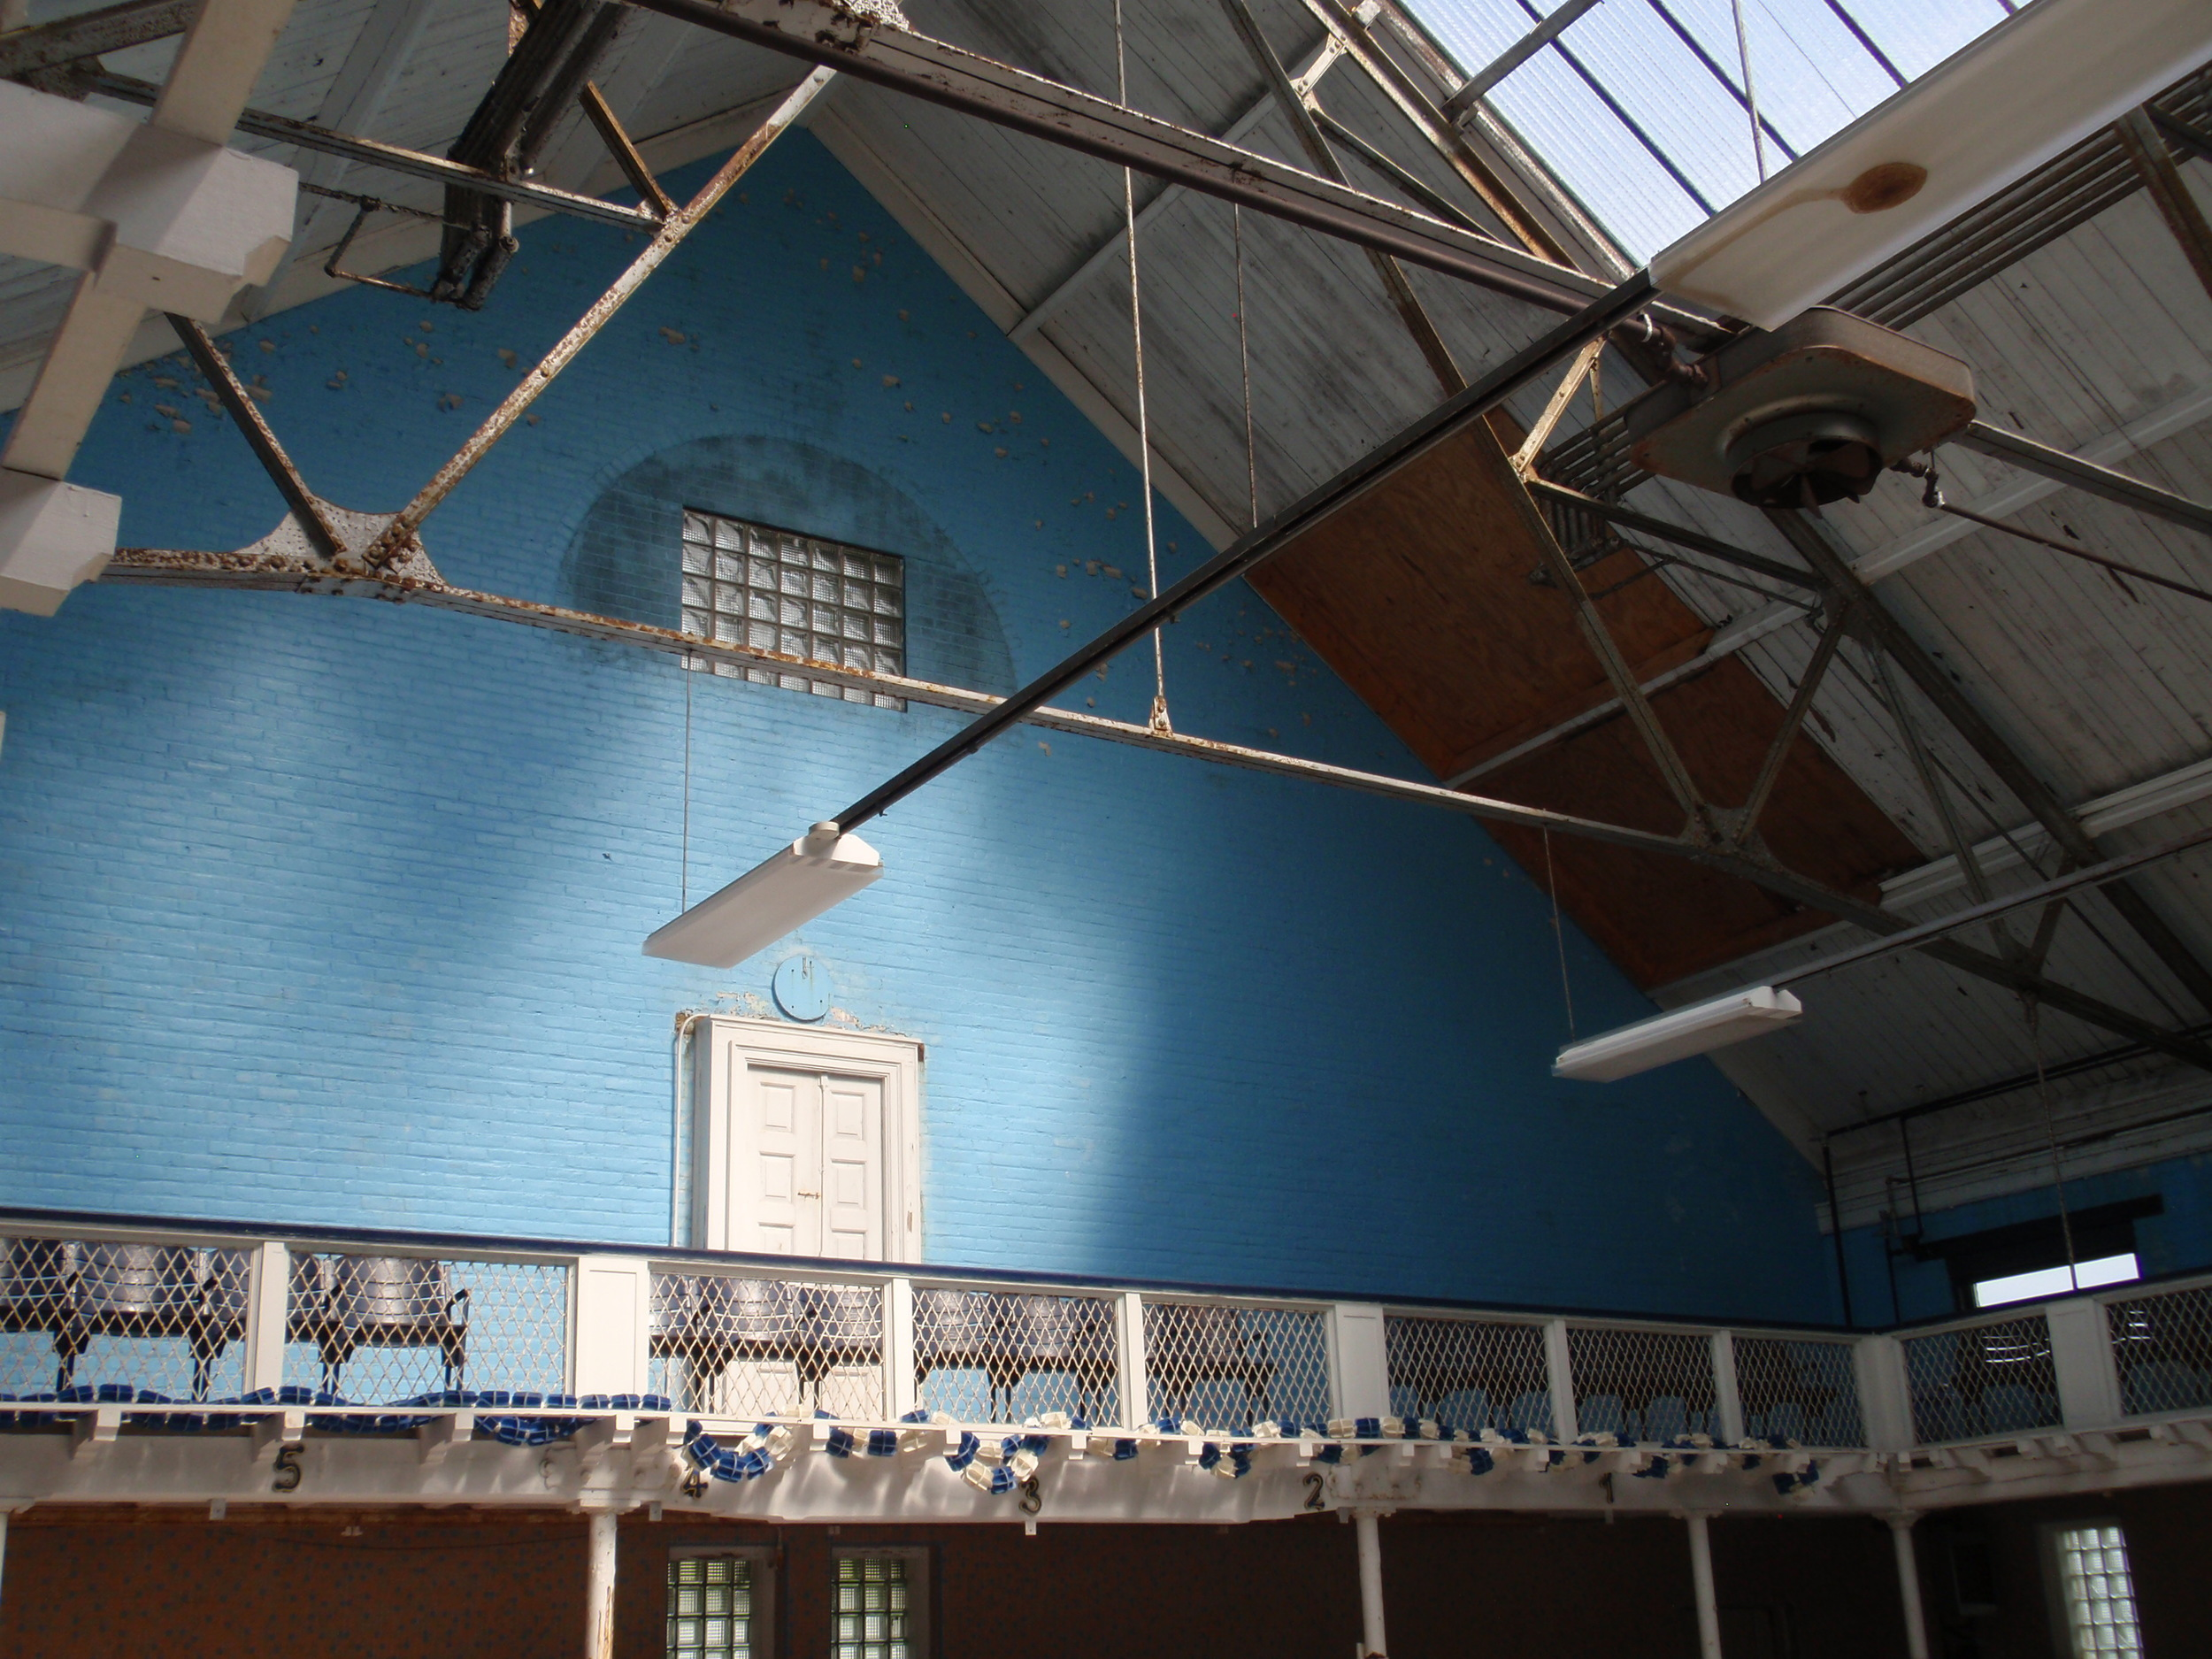 The western end of the pool. A large semi-circle window had been here, but was replaced with glass blocks in the 1970s. The door provides access to an outdoor catwalk that was over the original outdoor pool.